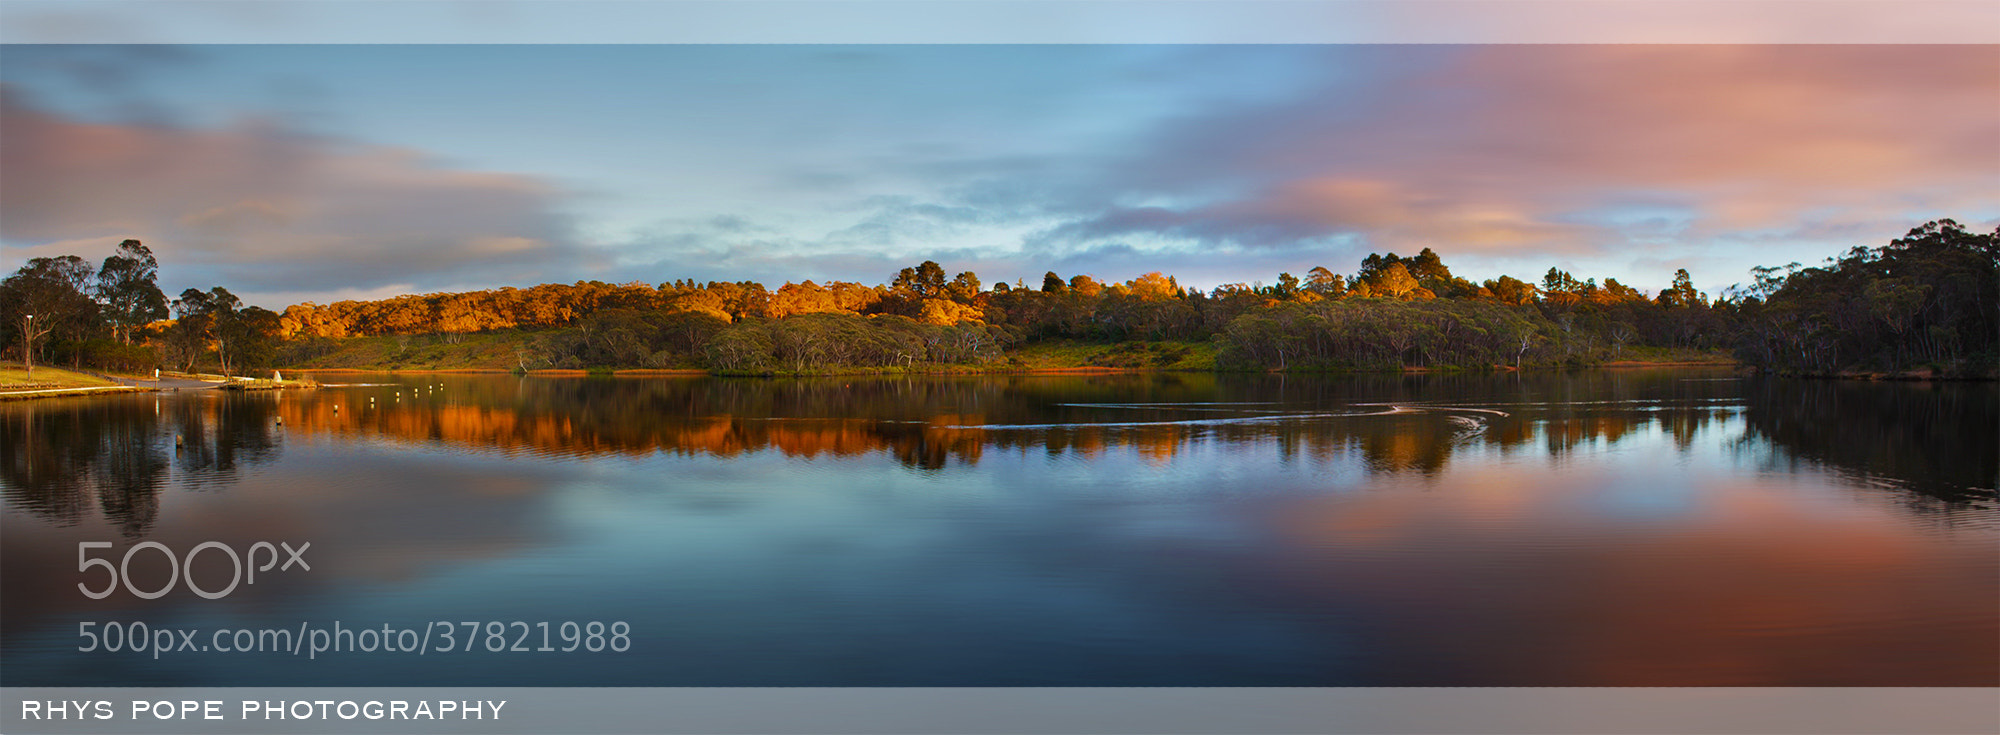 Photograph Sunrise On The Lake || WENTWORTH FALLS by Rhys Pope  on 500px